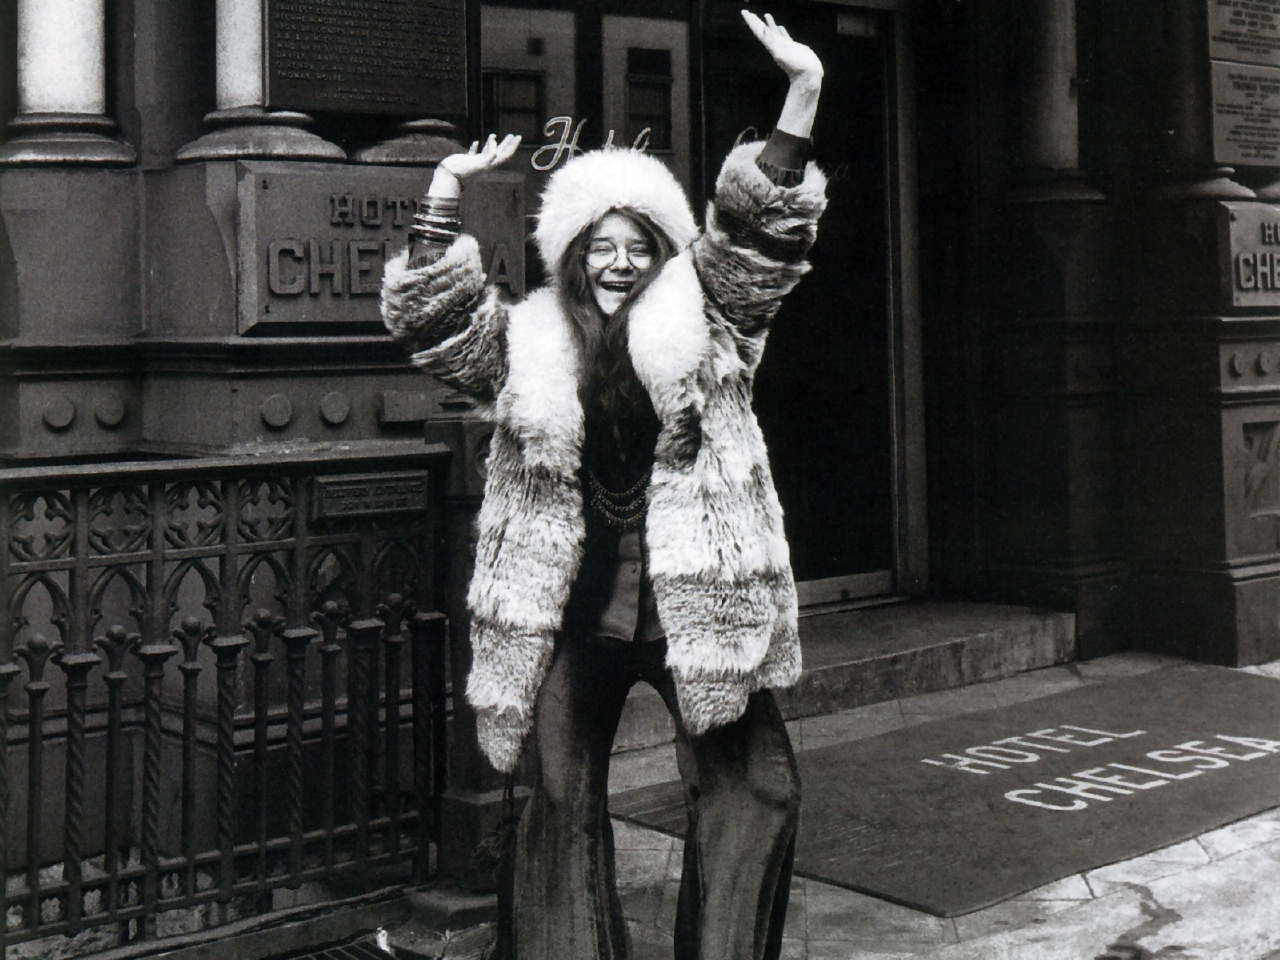 a-guide-to-cool-janis-joplin-folkr-2